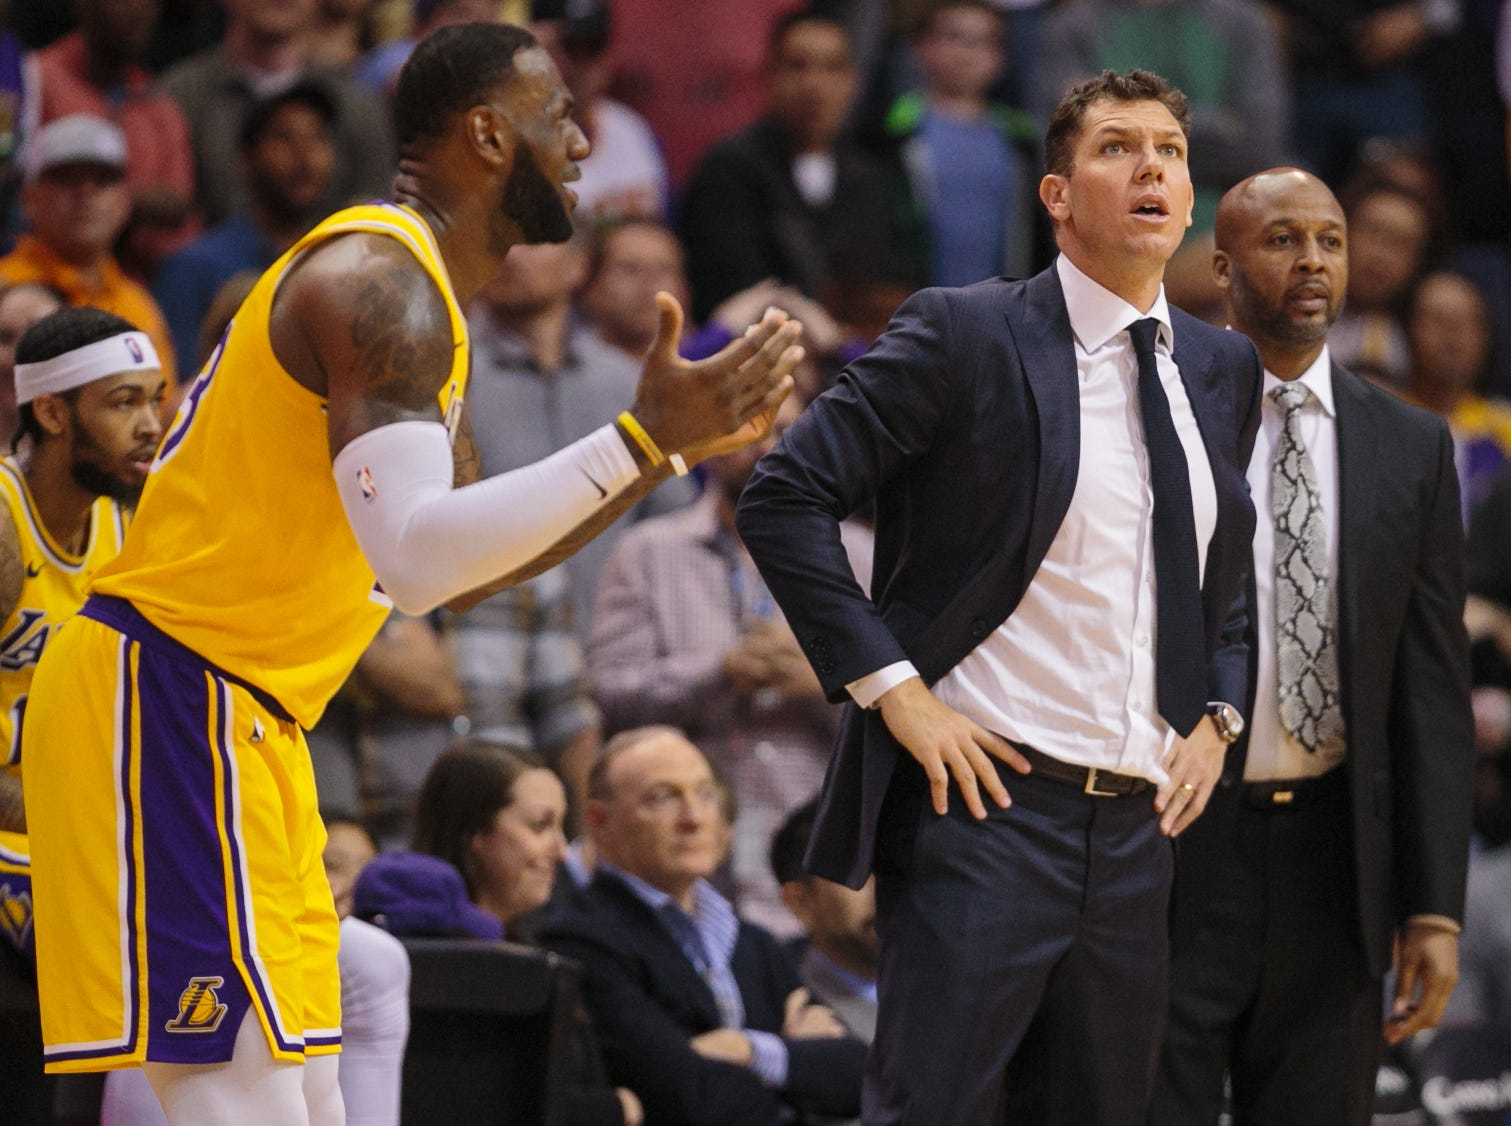 The Lakers will be making offseason changes and many believe coach Luke Walton will not return.